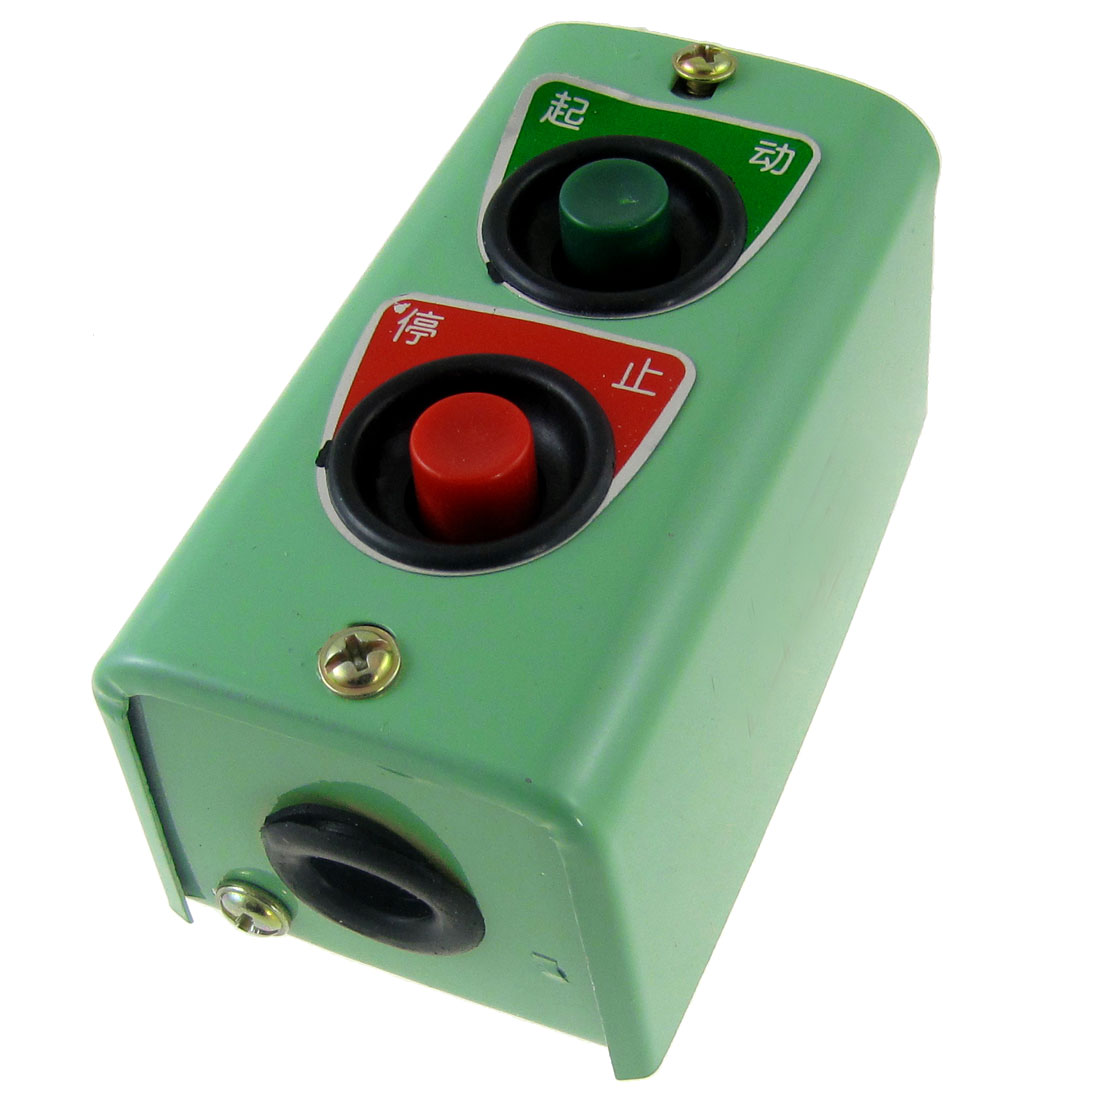 AC 220V 5A Momentary Push Button Switch Station Start Stop